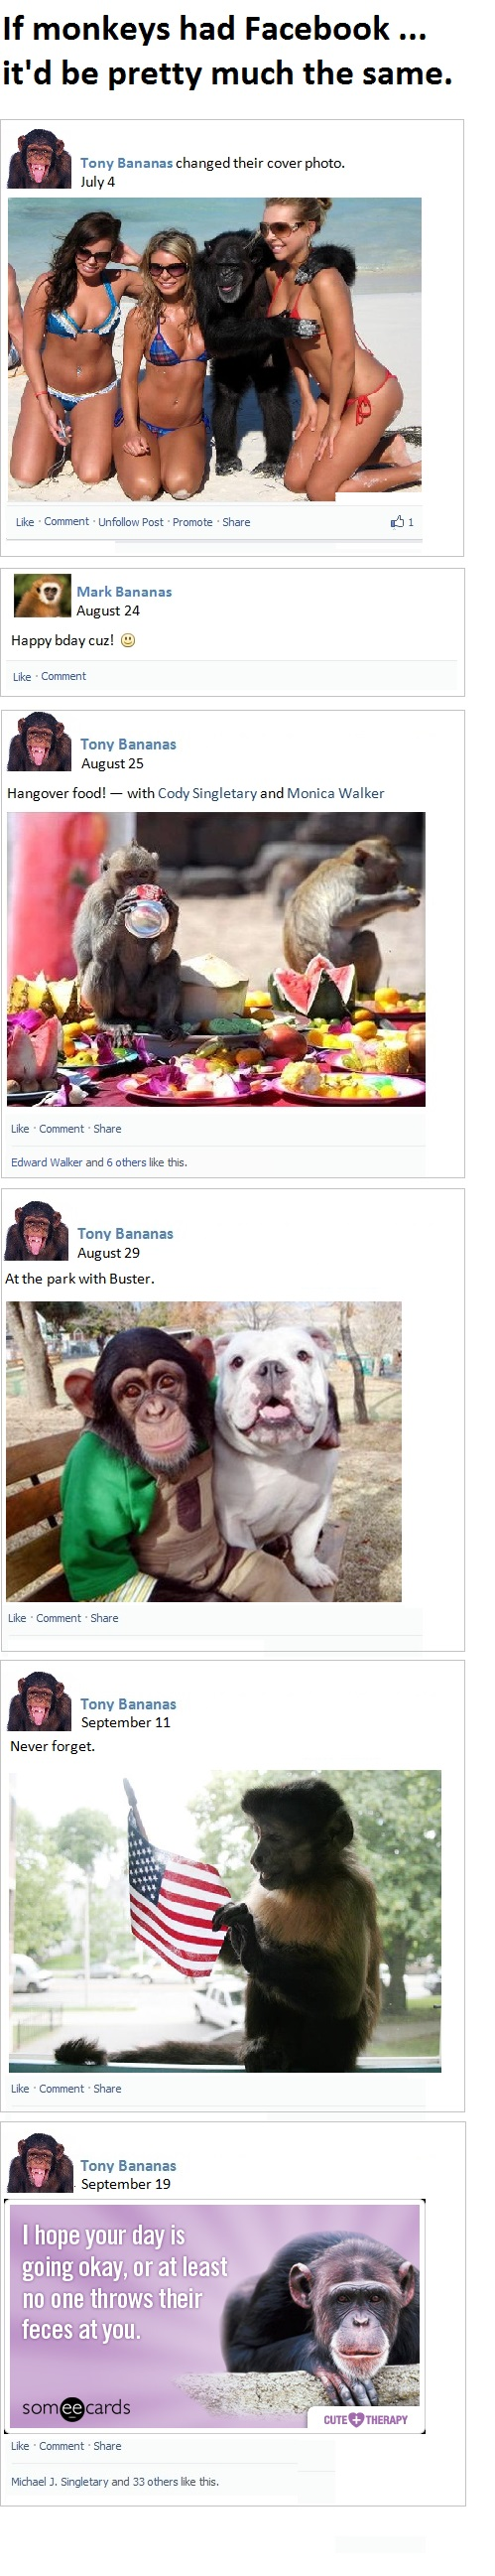 If Monkeys Had Facebook